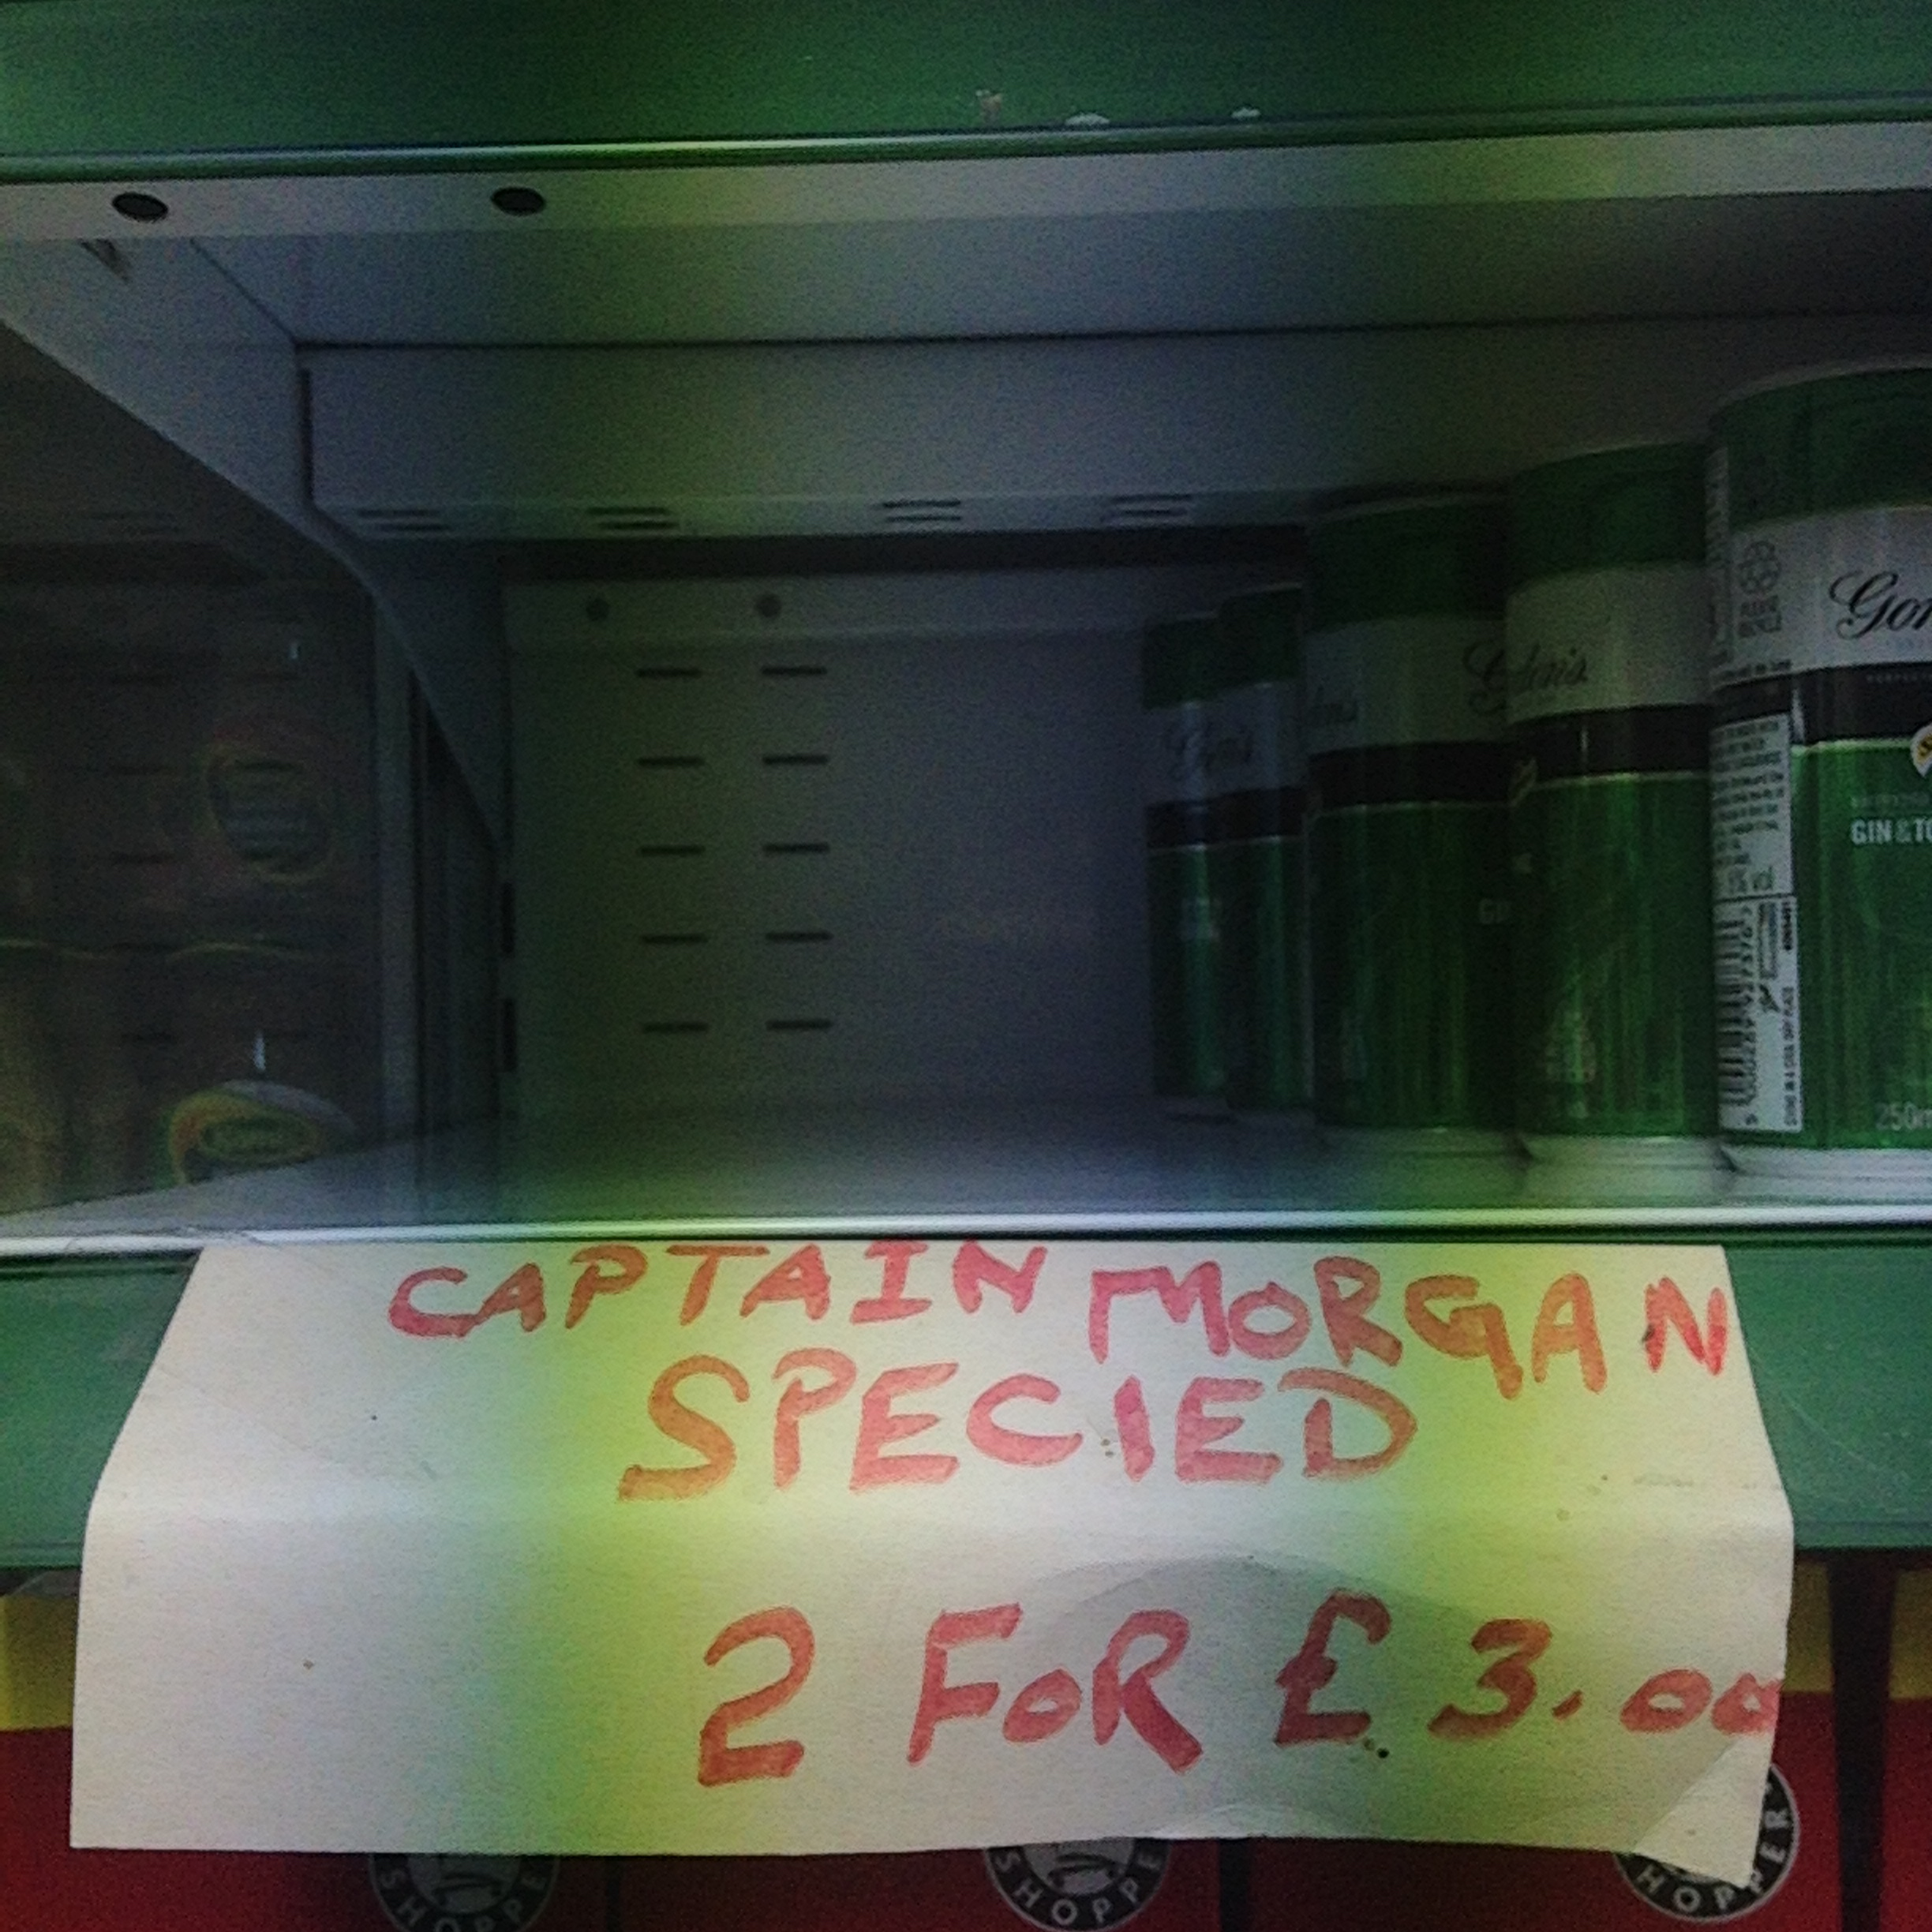 captain morgan specied